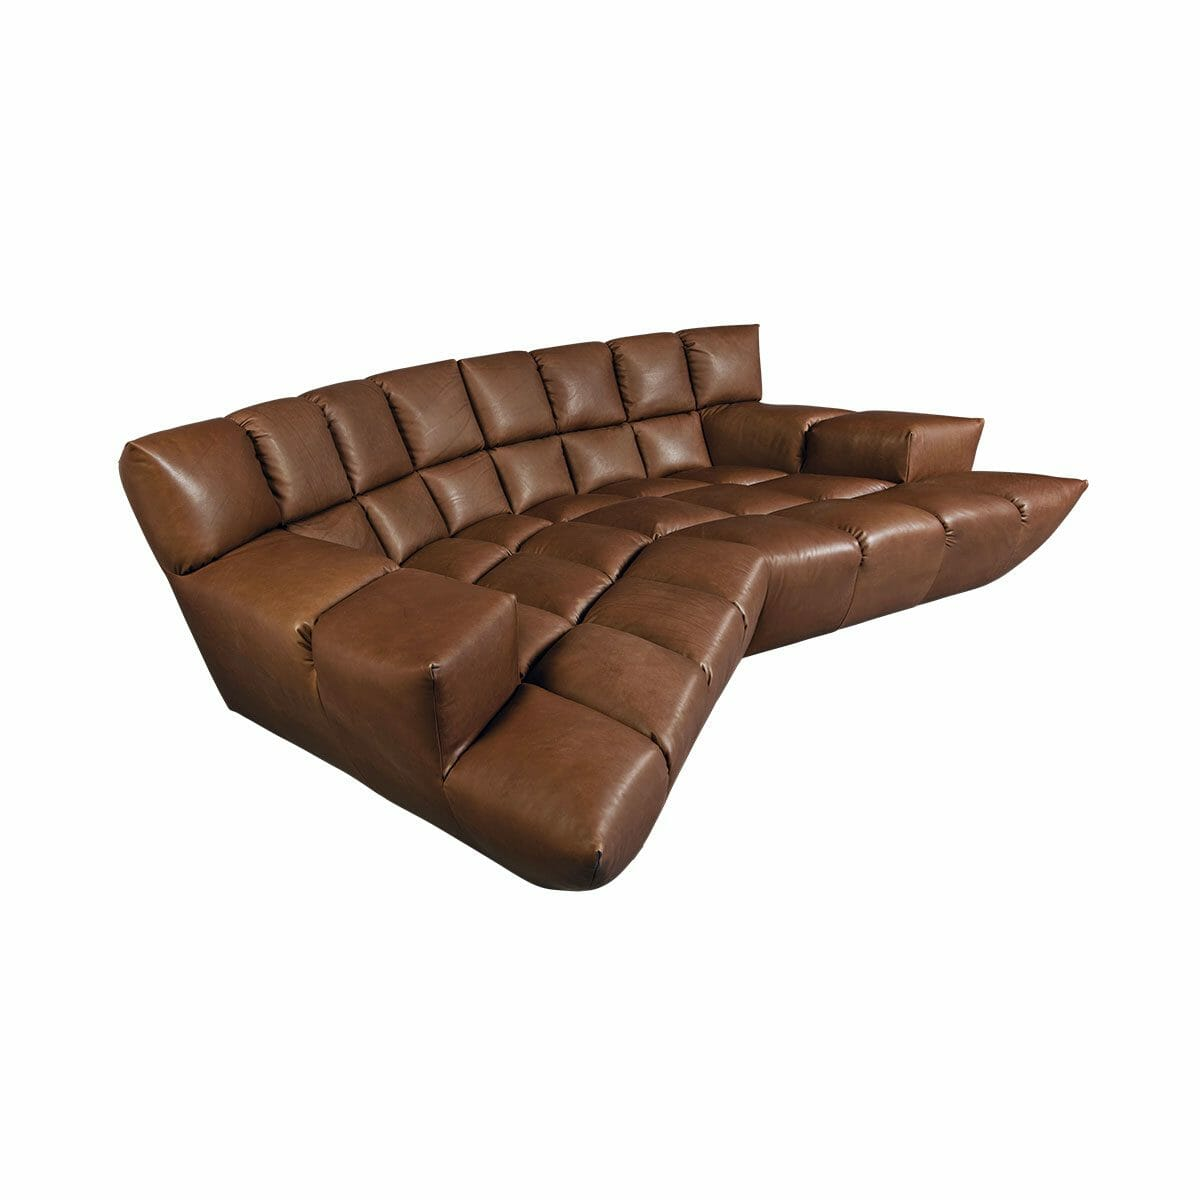 Bretz Cloud Bretz Cloud 7 G154 Top Angebote An Bretz Cloud7 Sofas